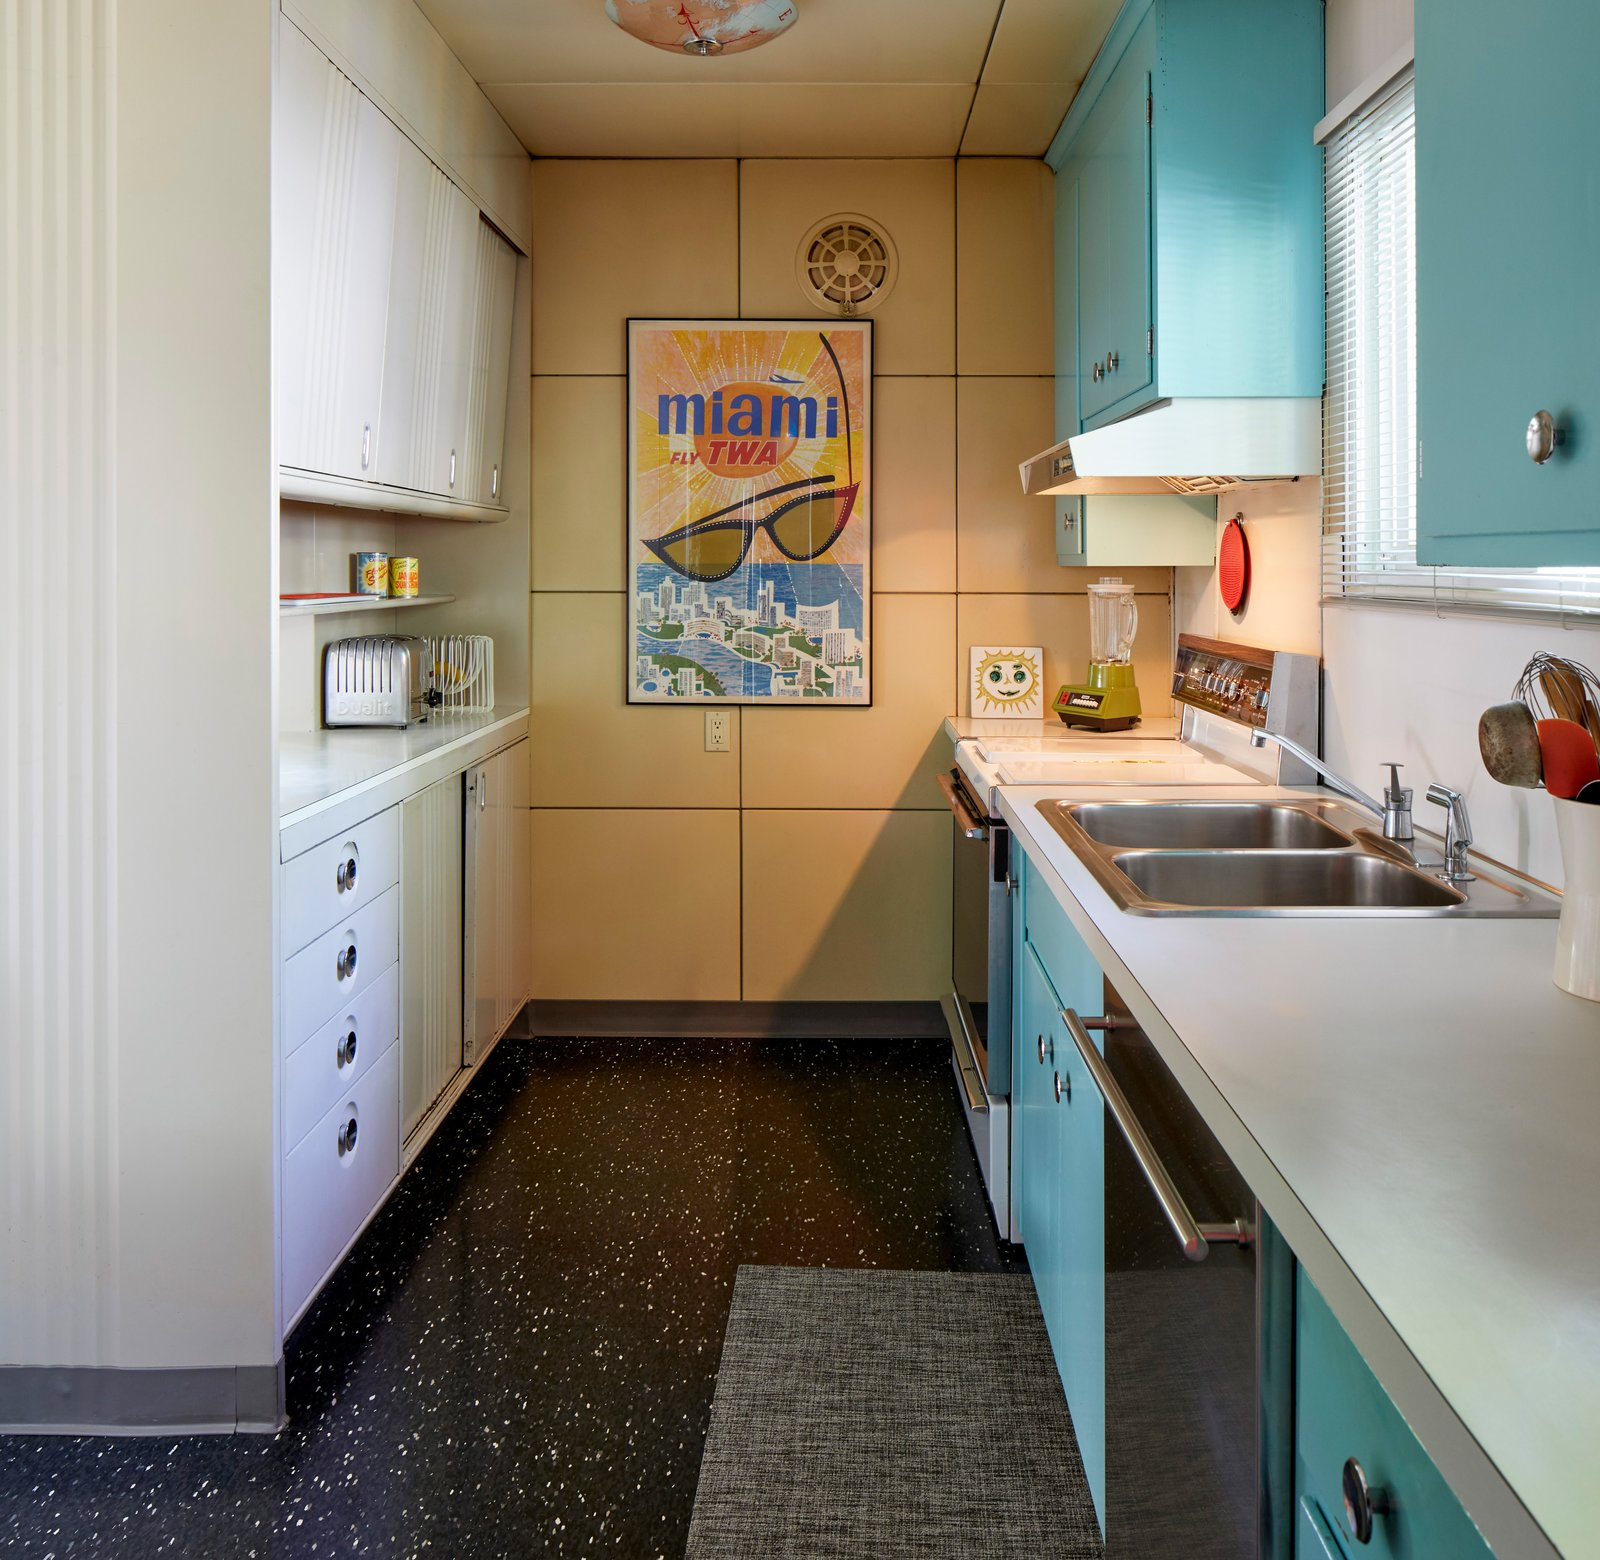 Kitchen, Drop In, Cooktops, Linoleum, Colorful, White, Laminate, and Dishwasher In the kitchen, blue cabinets add another captivating burst of color.  Best Kitchen Cooktops White Dishwasher Photos from A Lustron Steel Prefab in Pristine Condition Lists For $350K